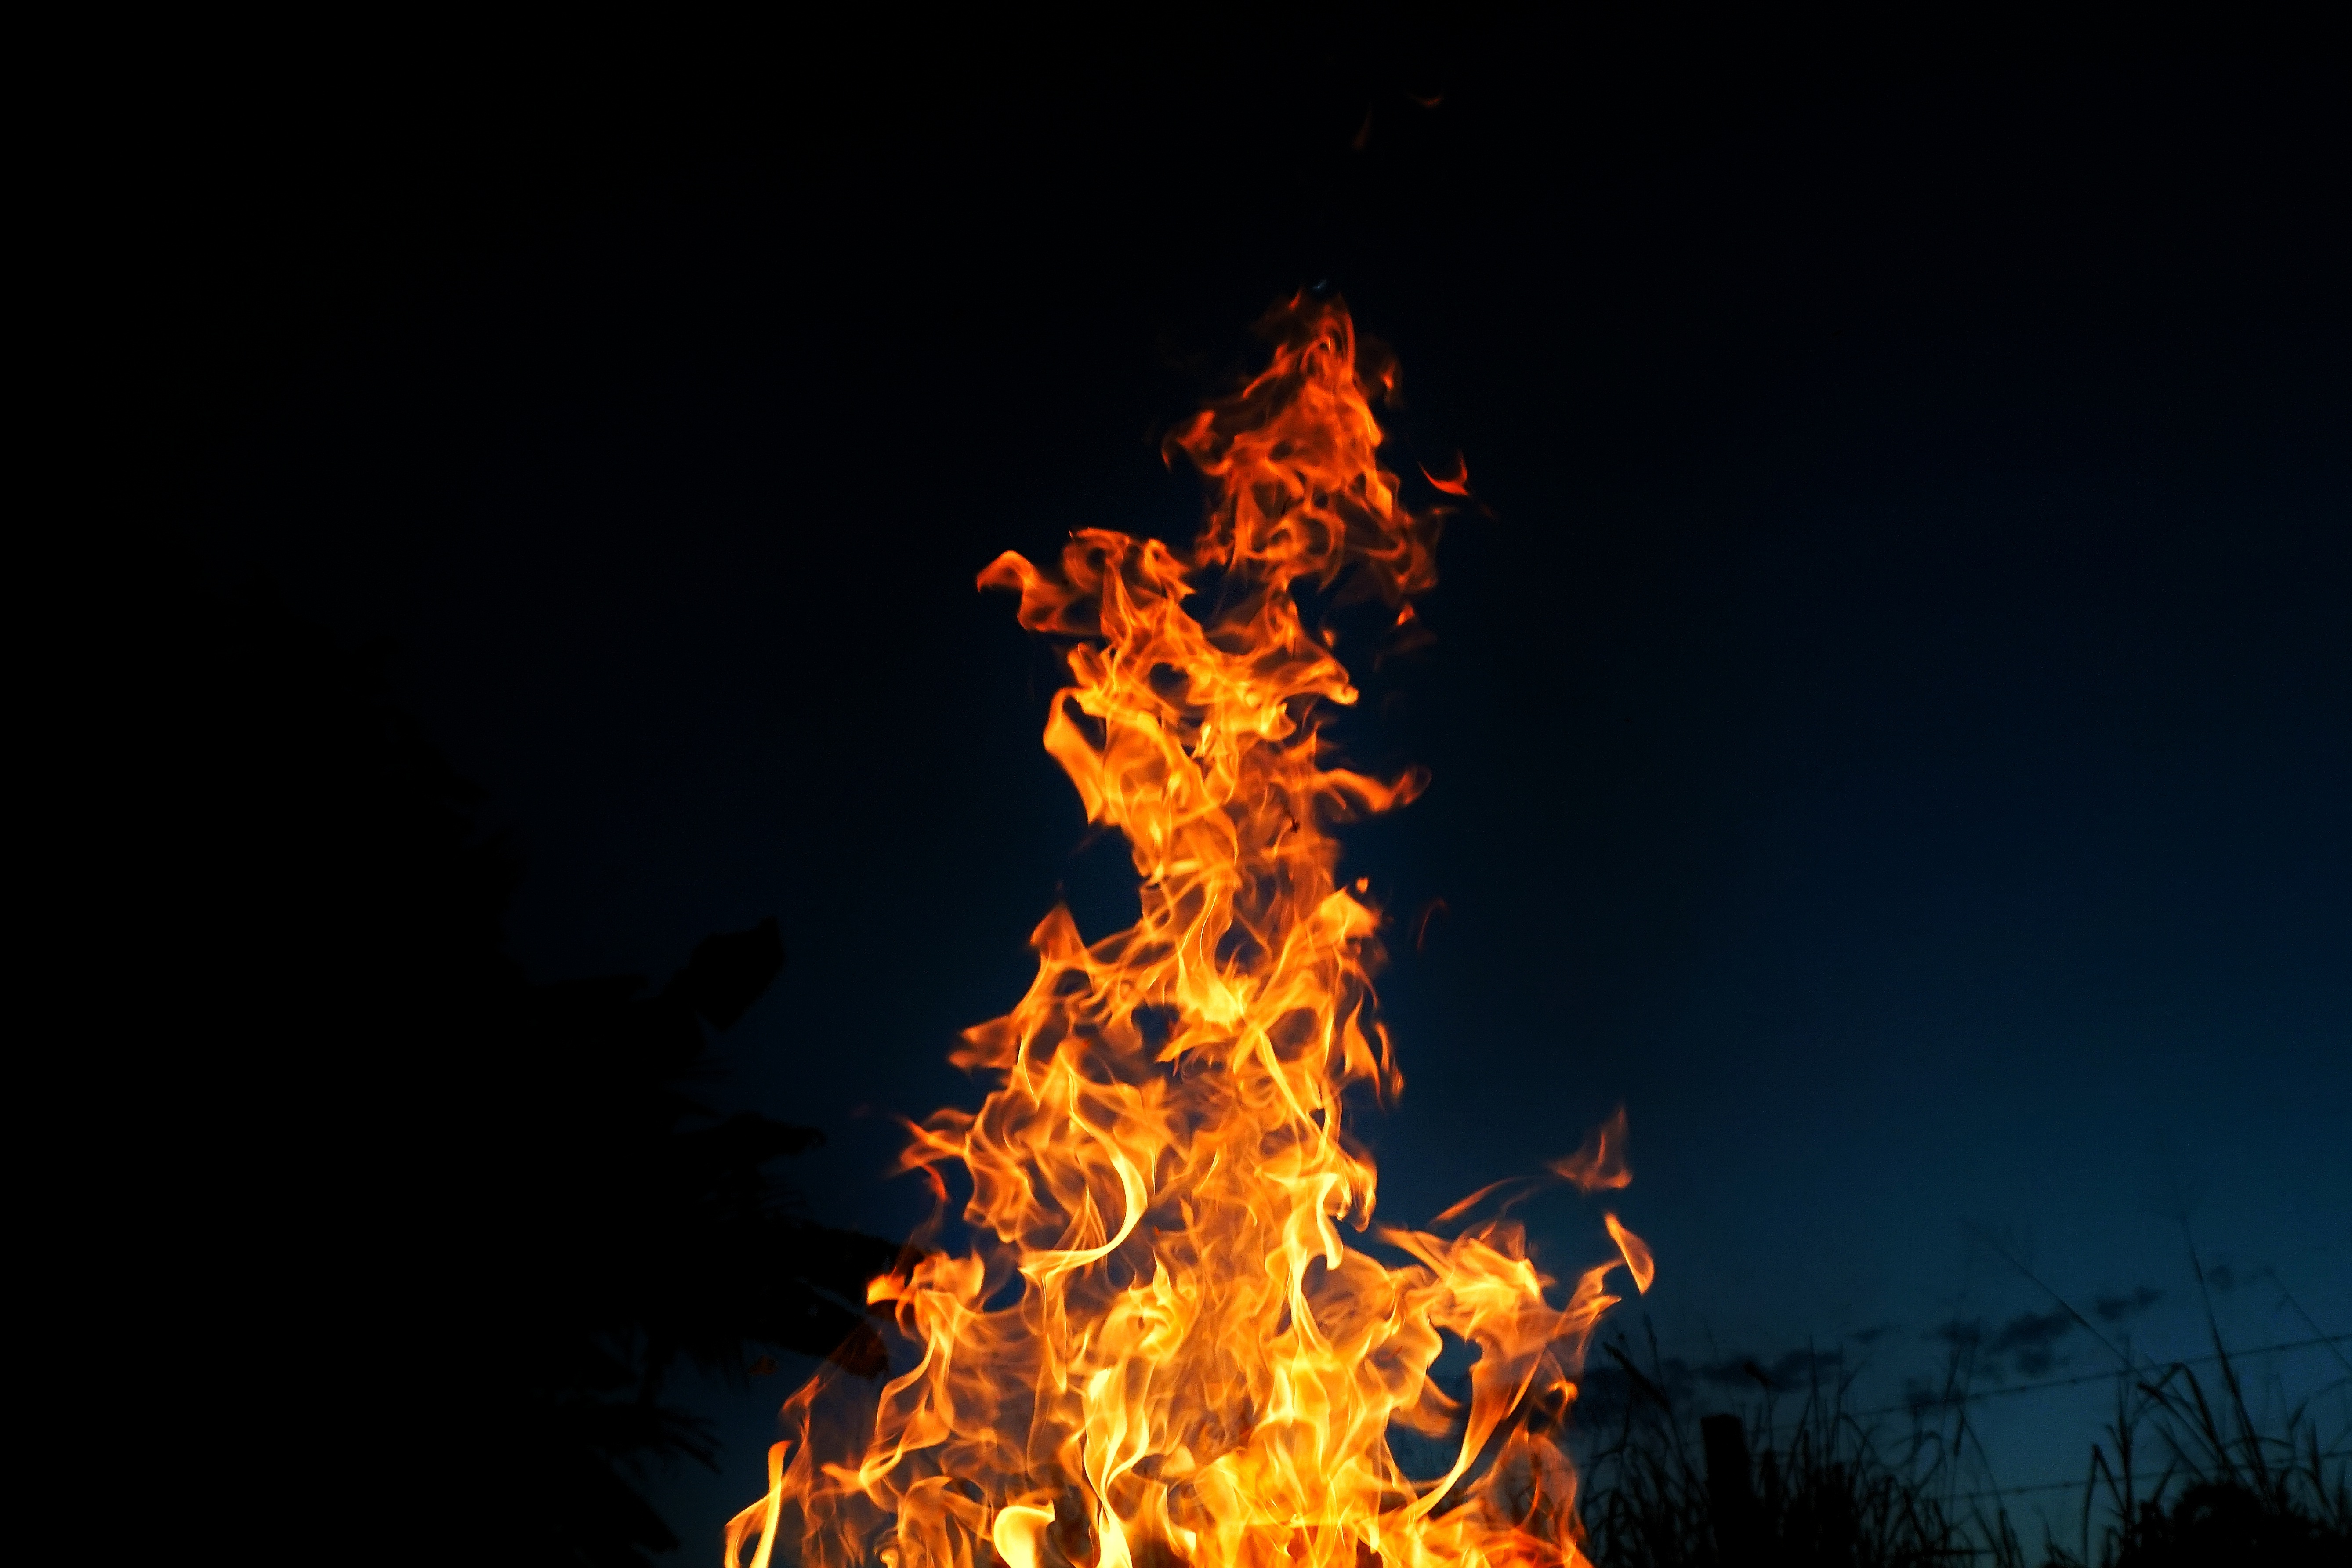 fire burning hd photography 4k wallpapers images